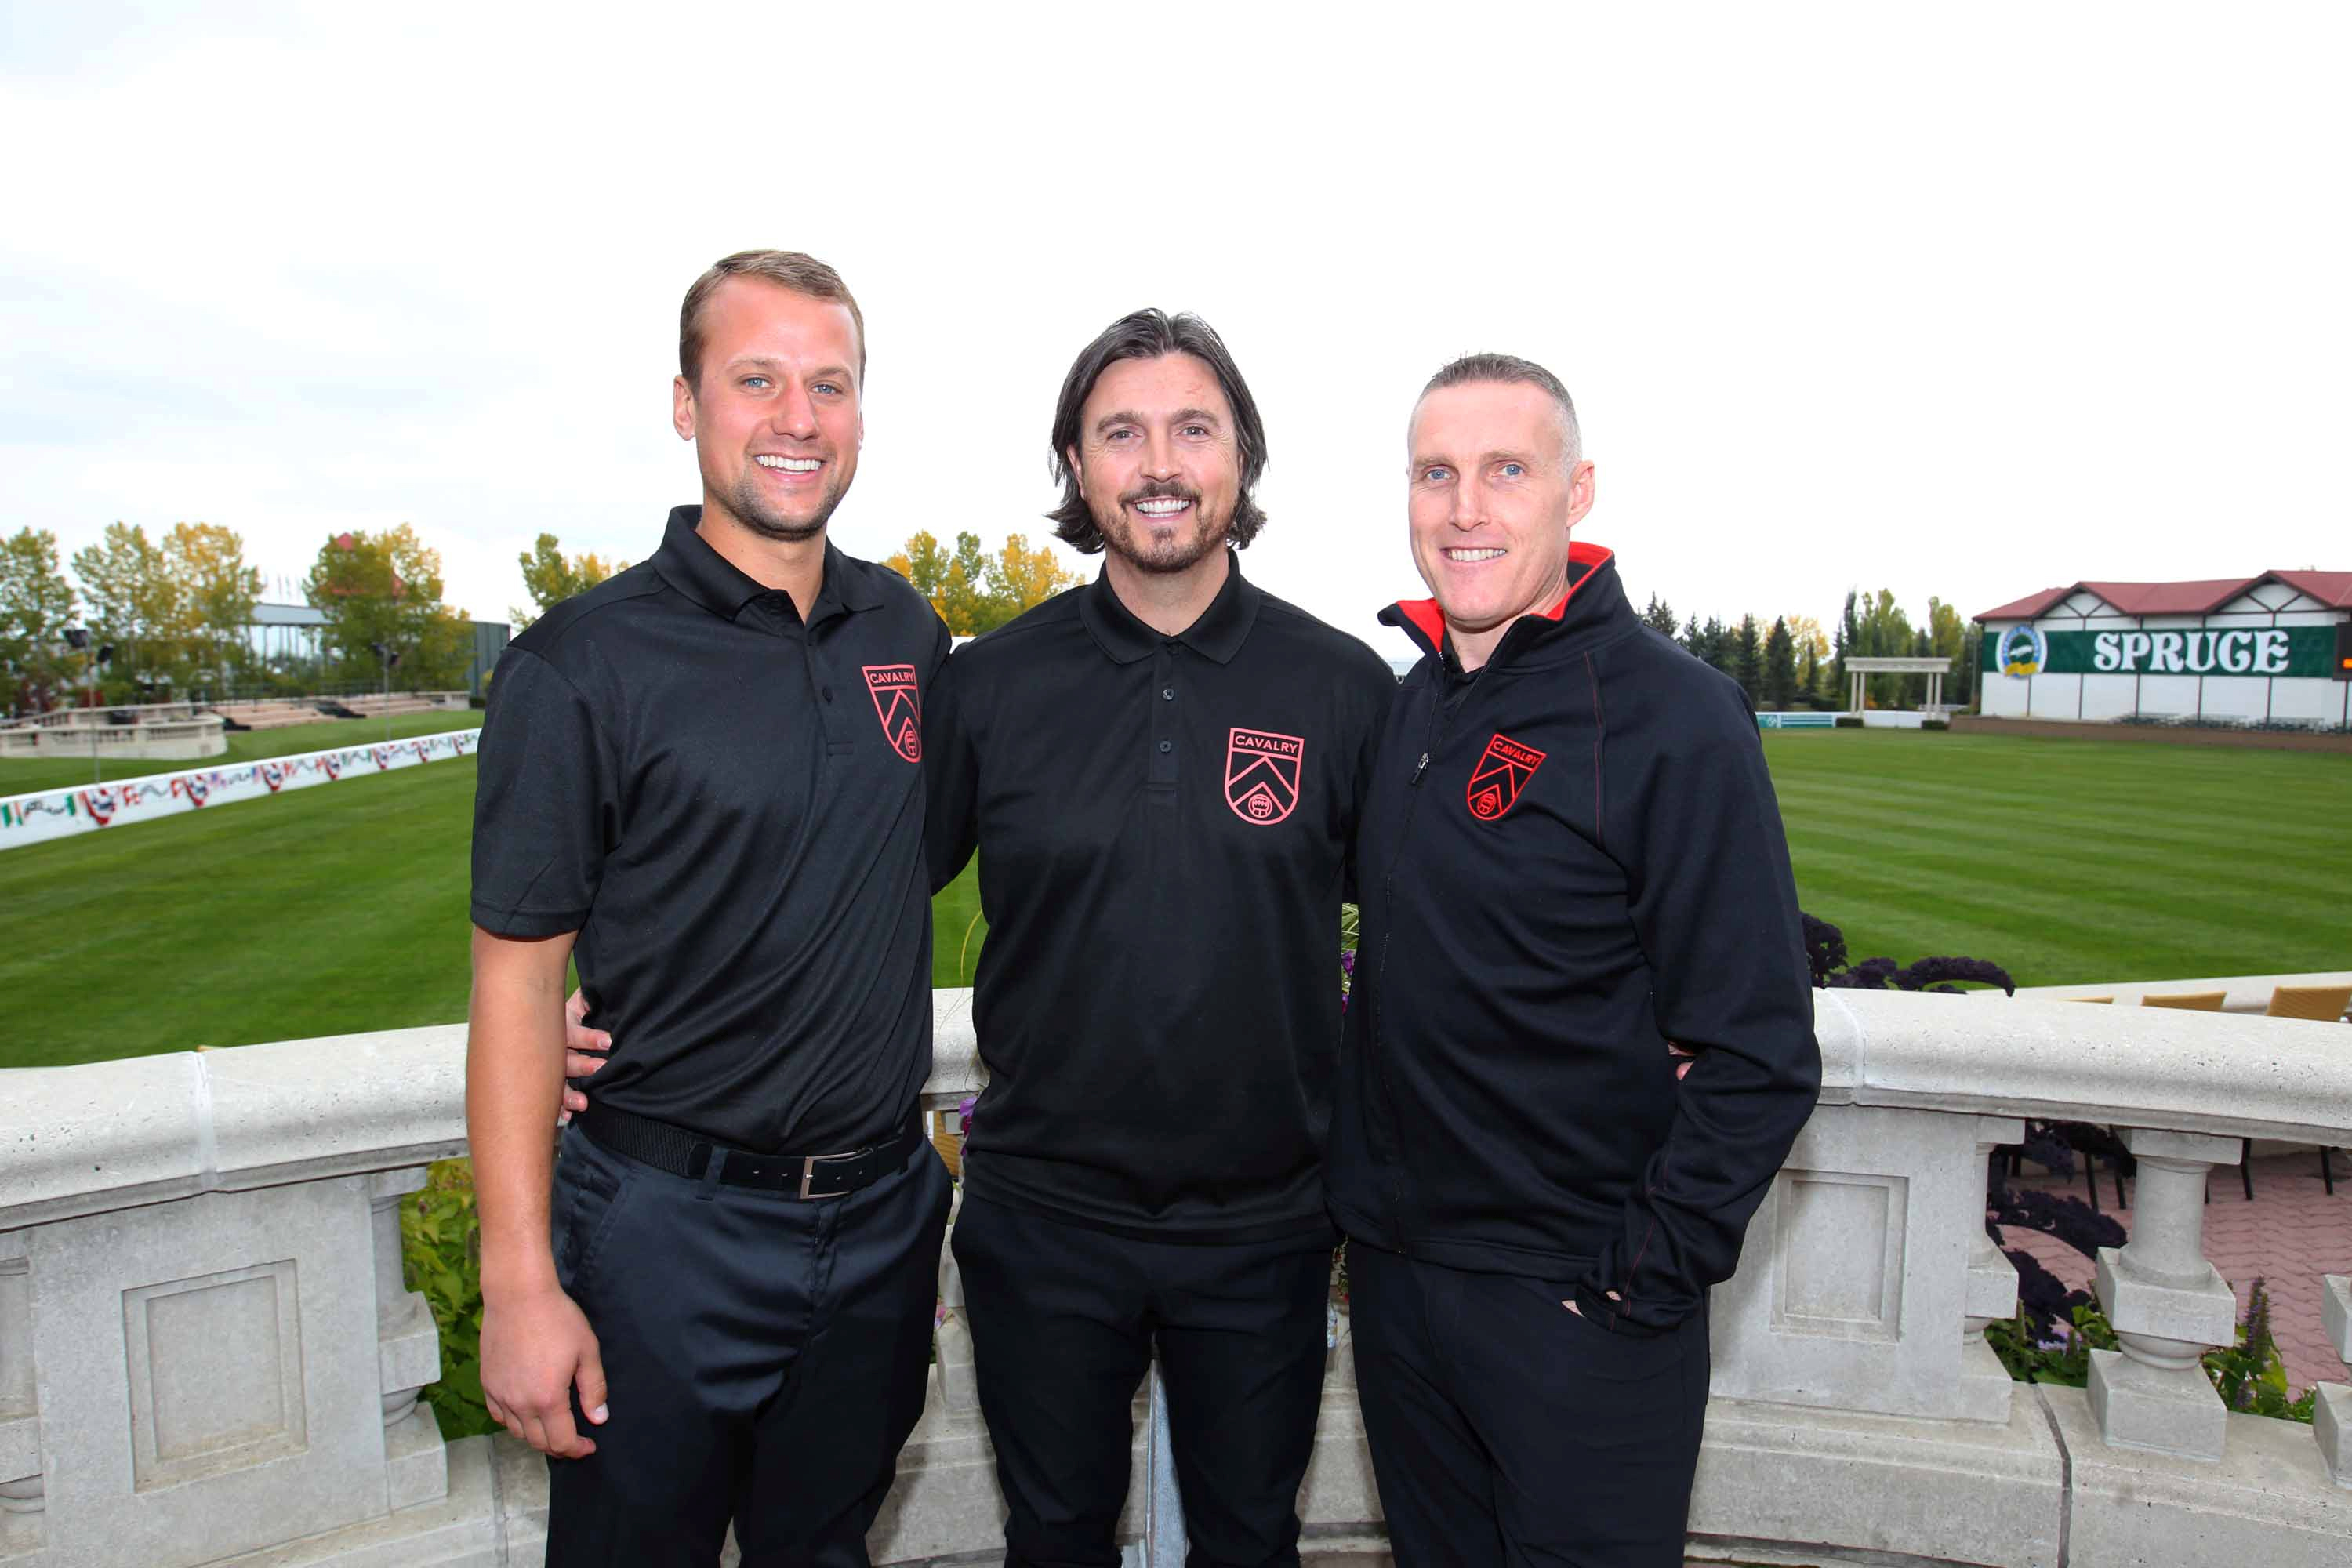 Cavalry FC's coaching staff includes Jordan Santiago (L), Tommy Wheeldon Jr. (C) and Martin Nash (R). (Photo courtesy: Jim Wells, Postmedia).